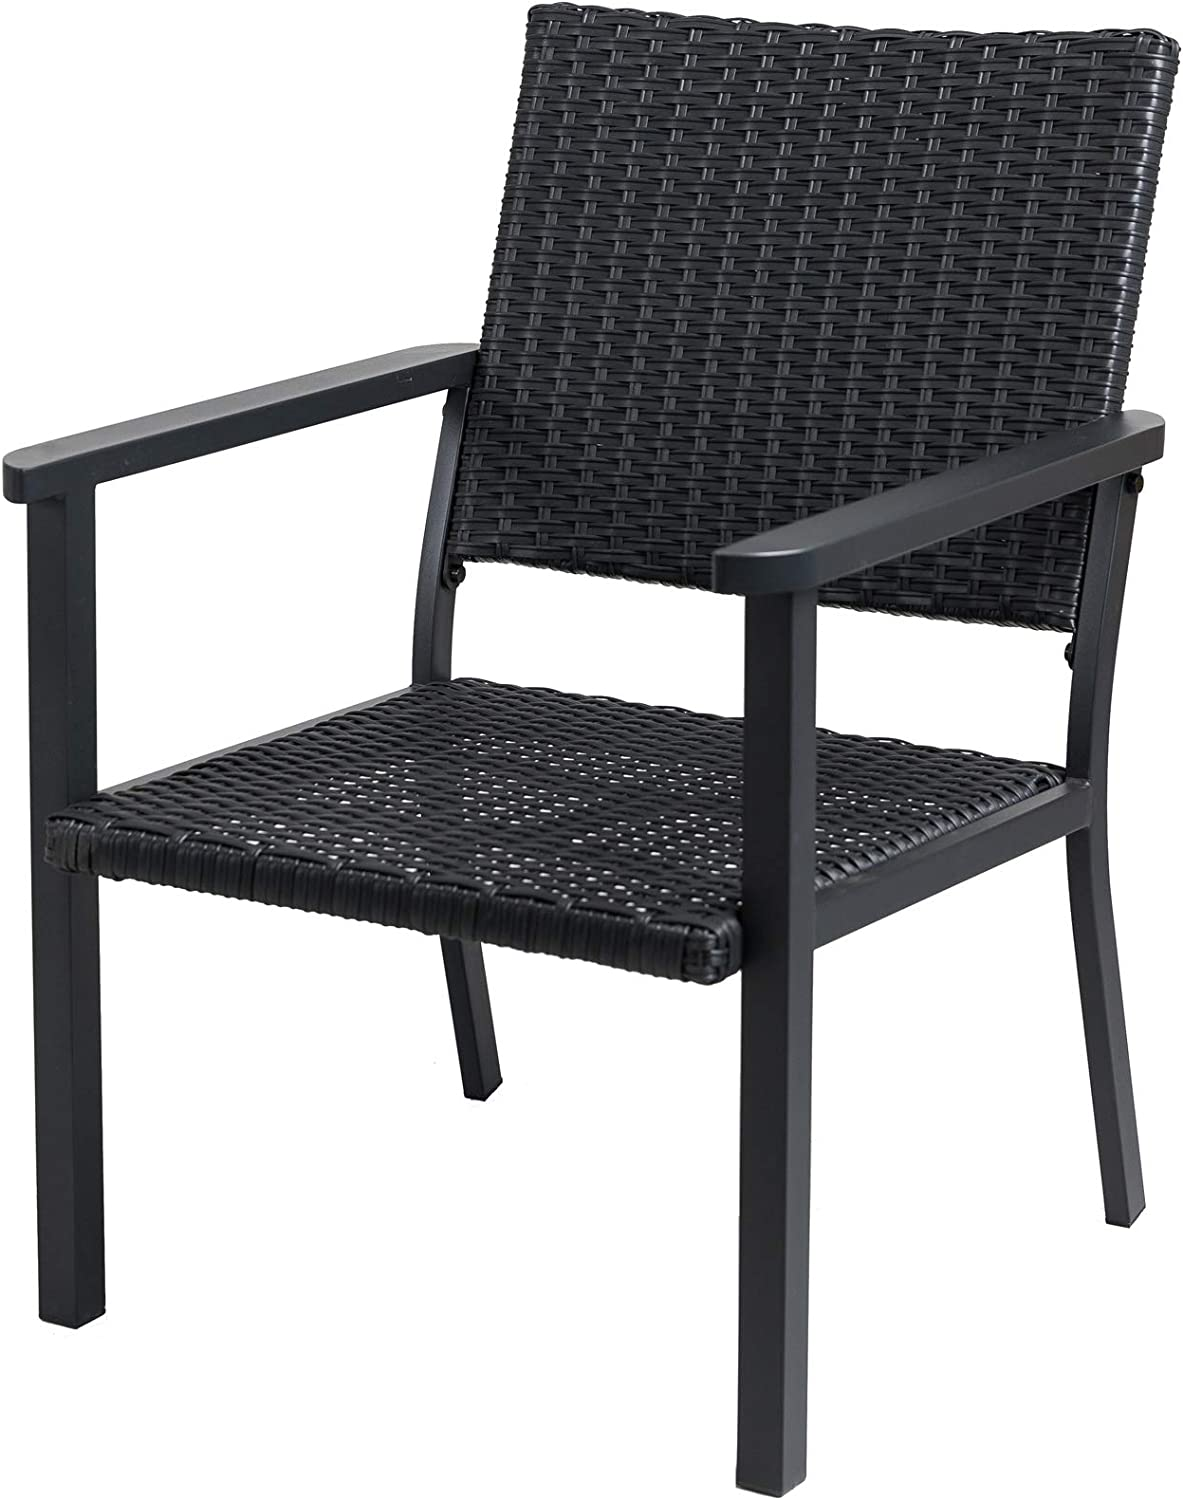 C-Hopetree Patio Popular products Lounge Brand new Chair for All with H Outdoor Weather use